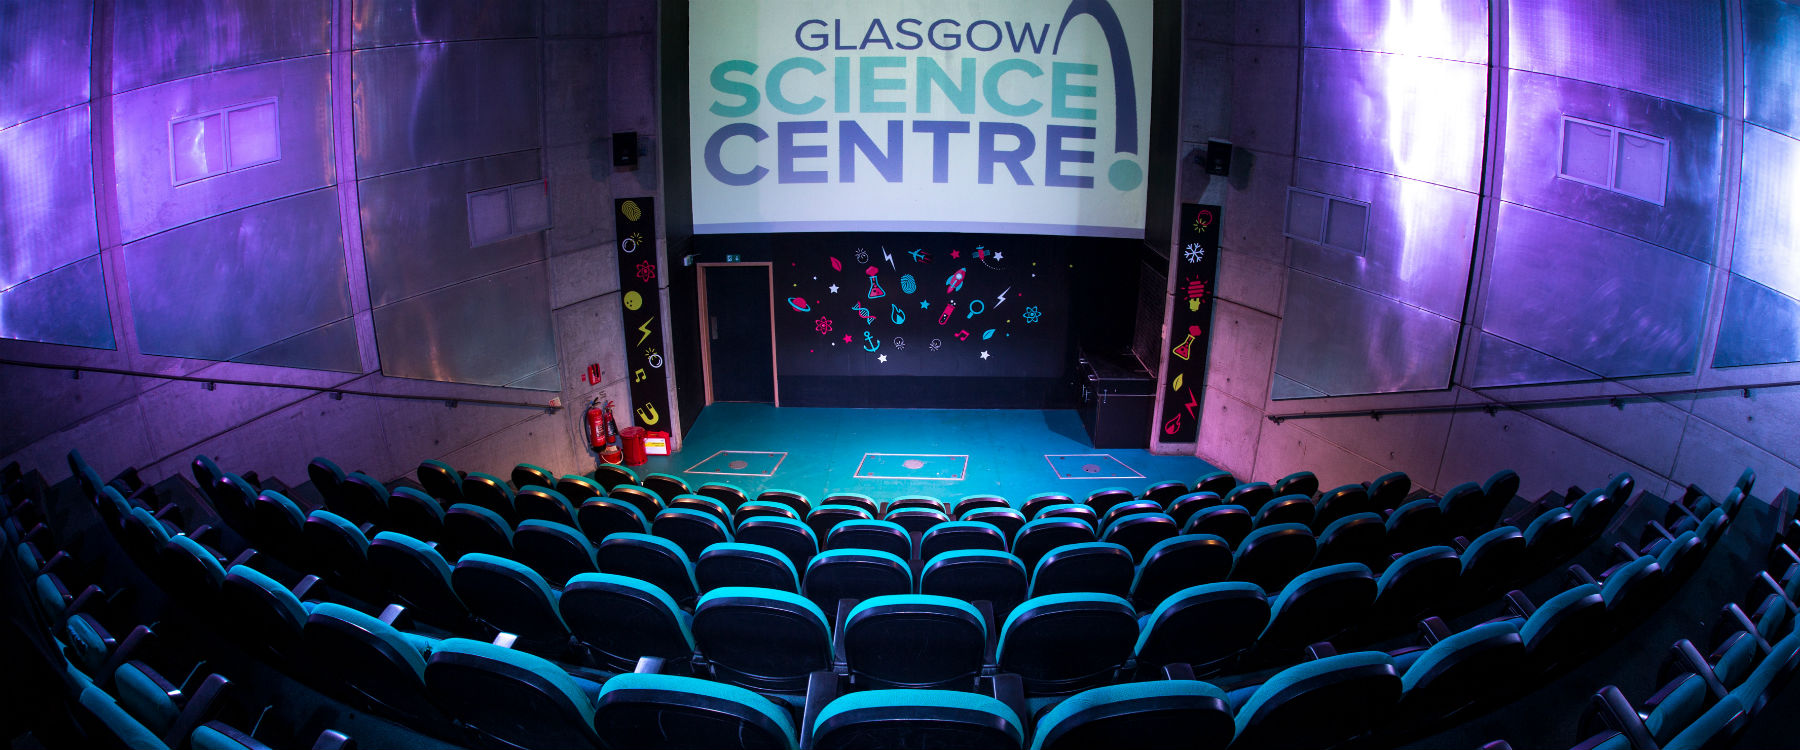 Science Show Theatre event space Glasgow Science Centre